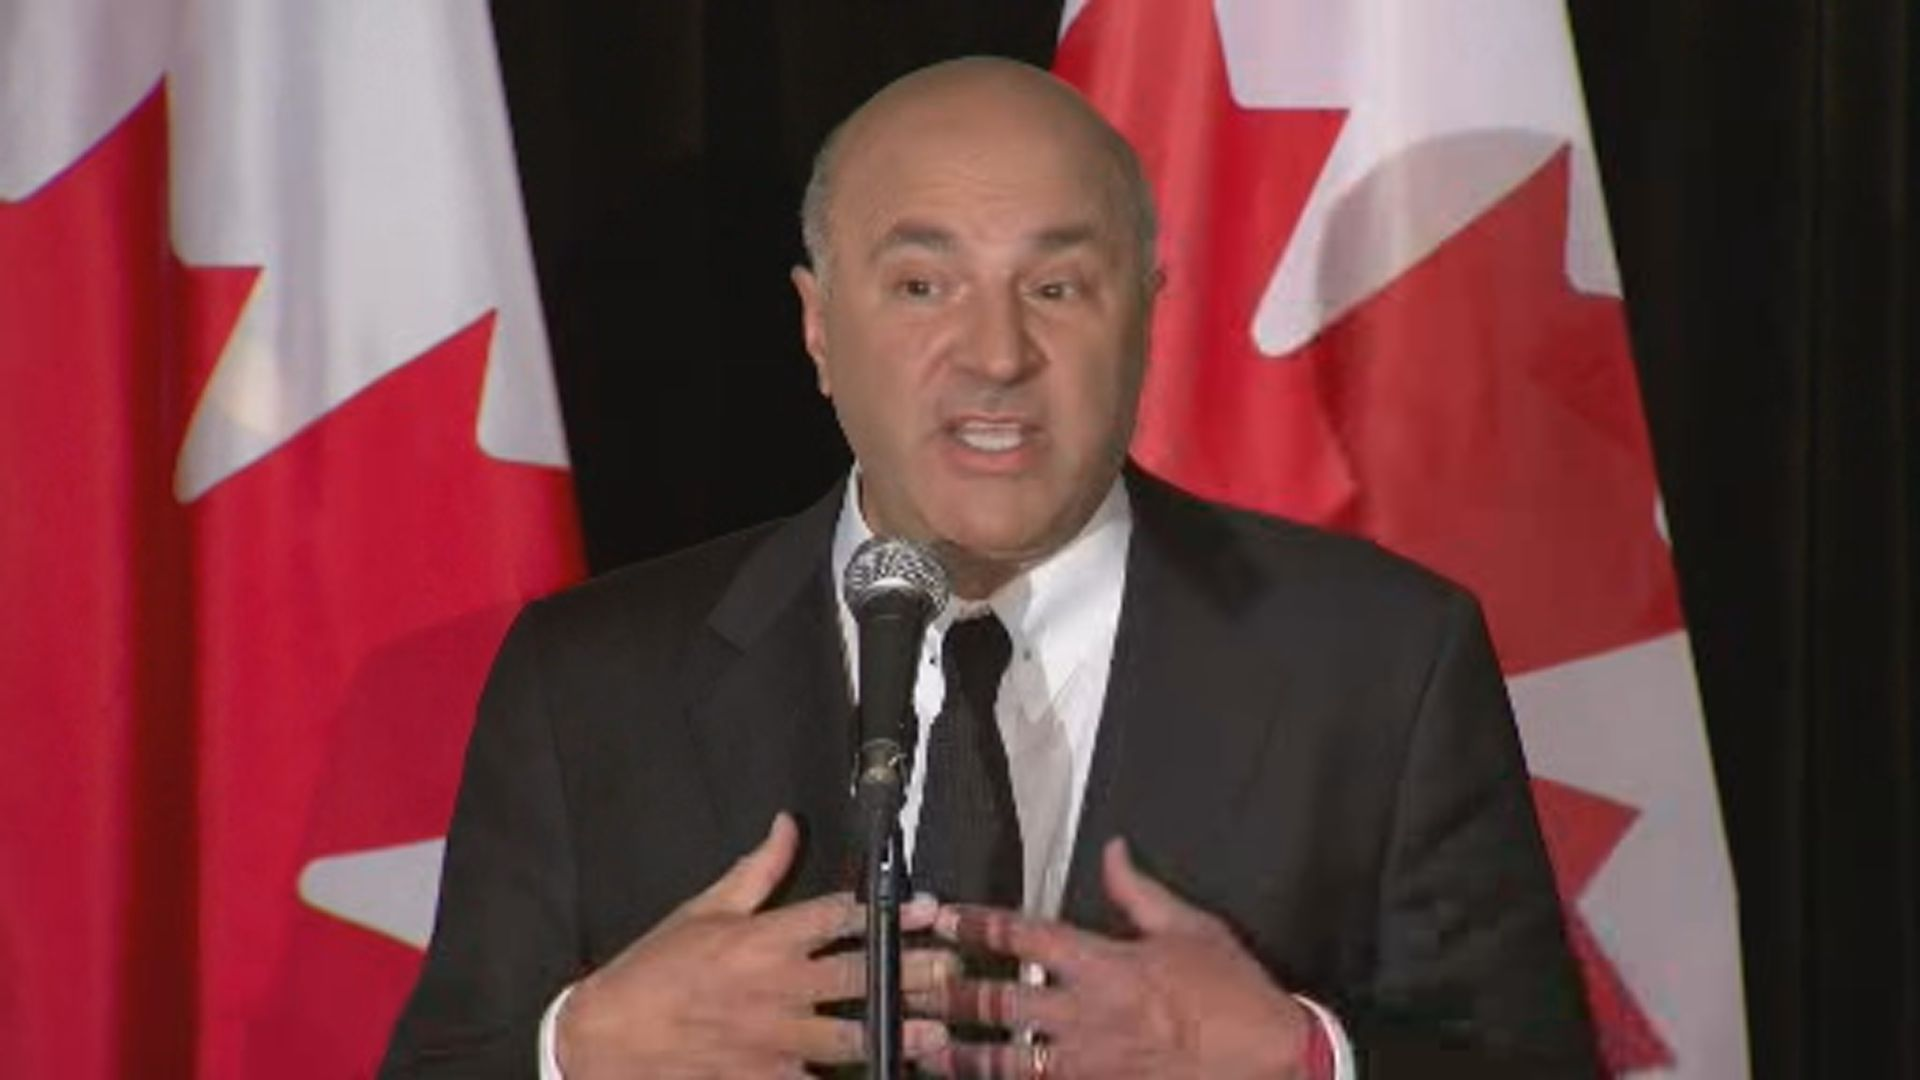 Kevin O'Leary's wife charged in last month's fatal boat crash in Muskoka area